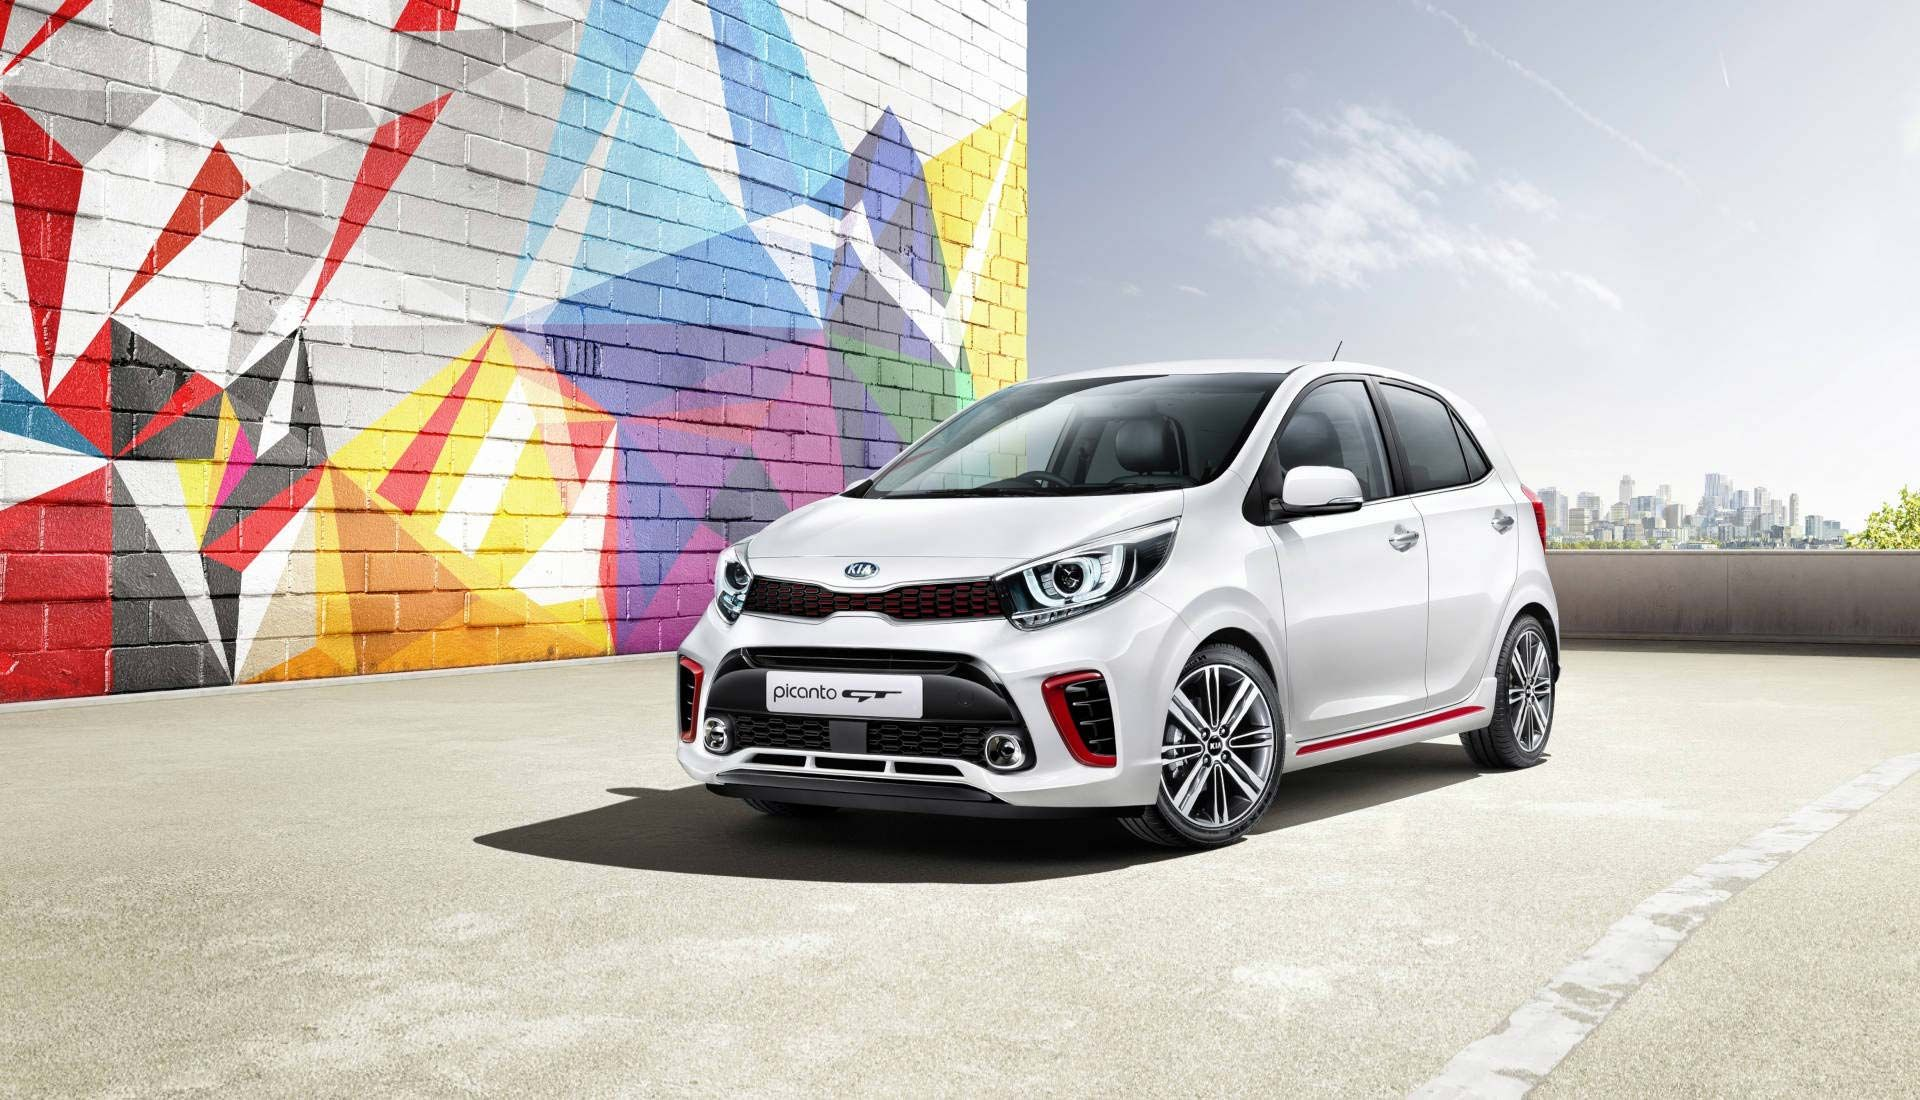 Picanto Small City Car Southland Kia